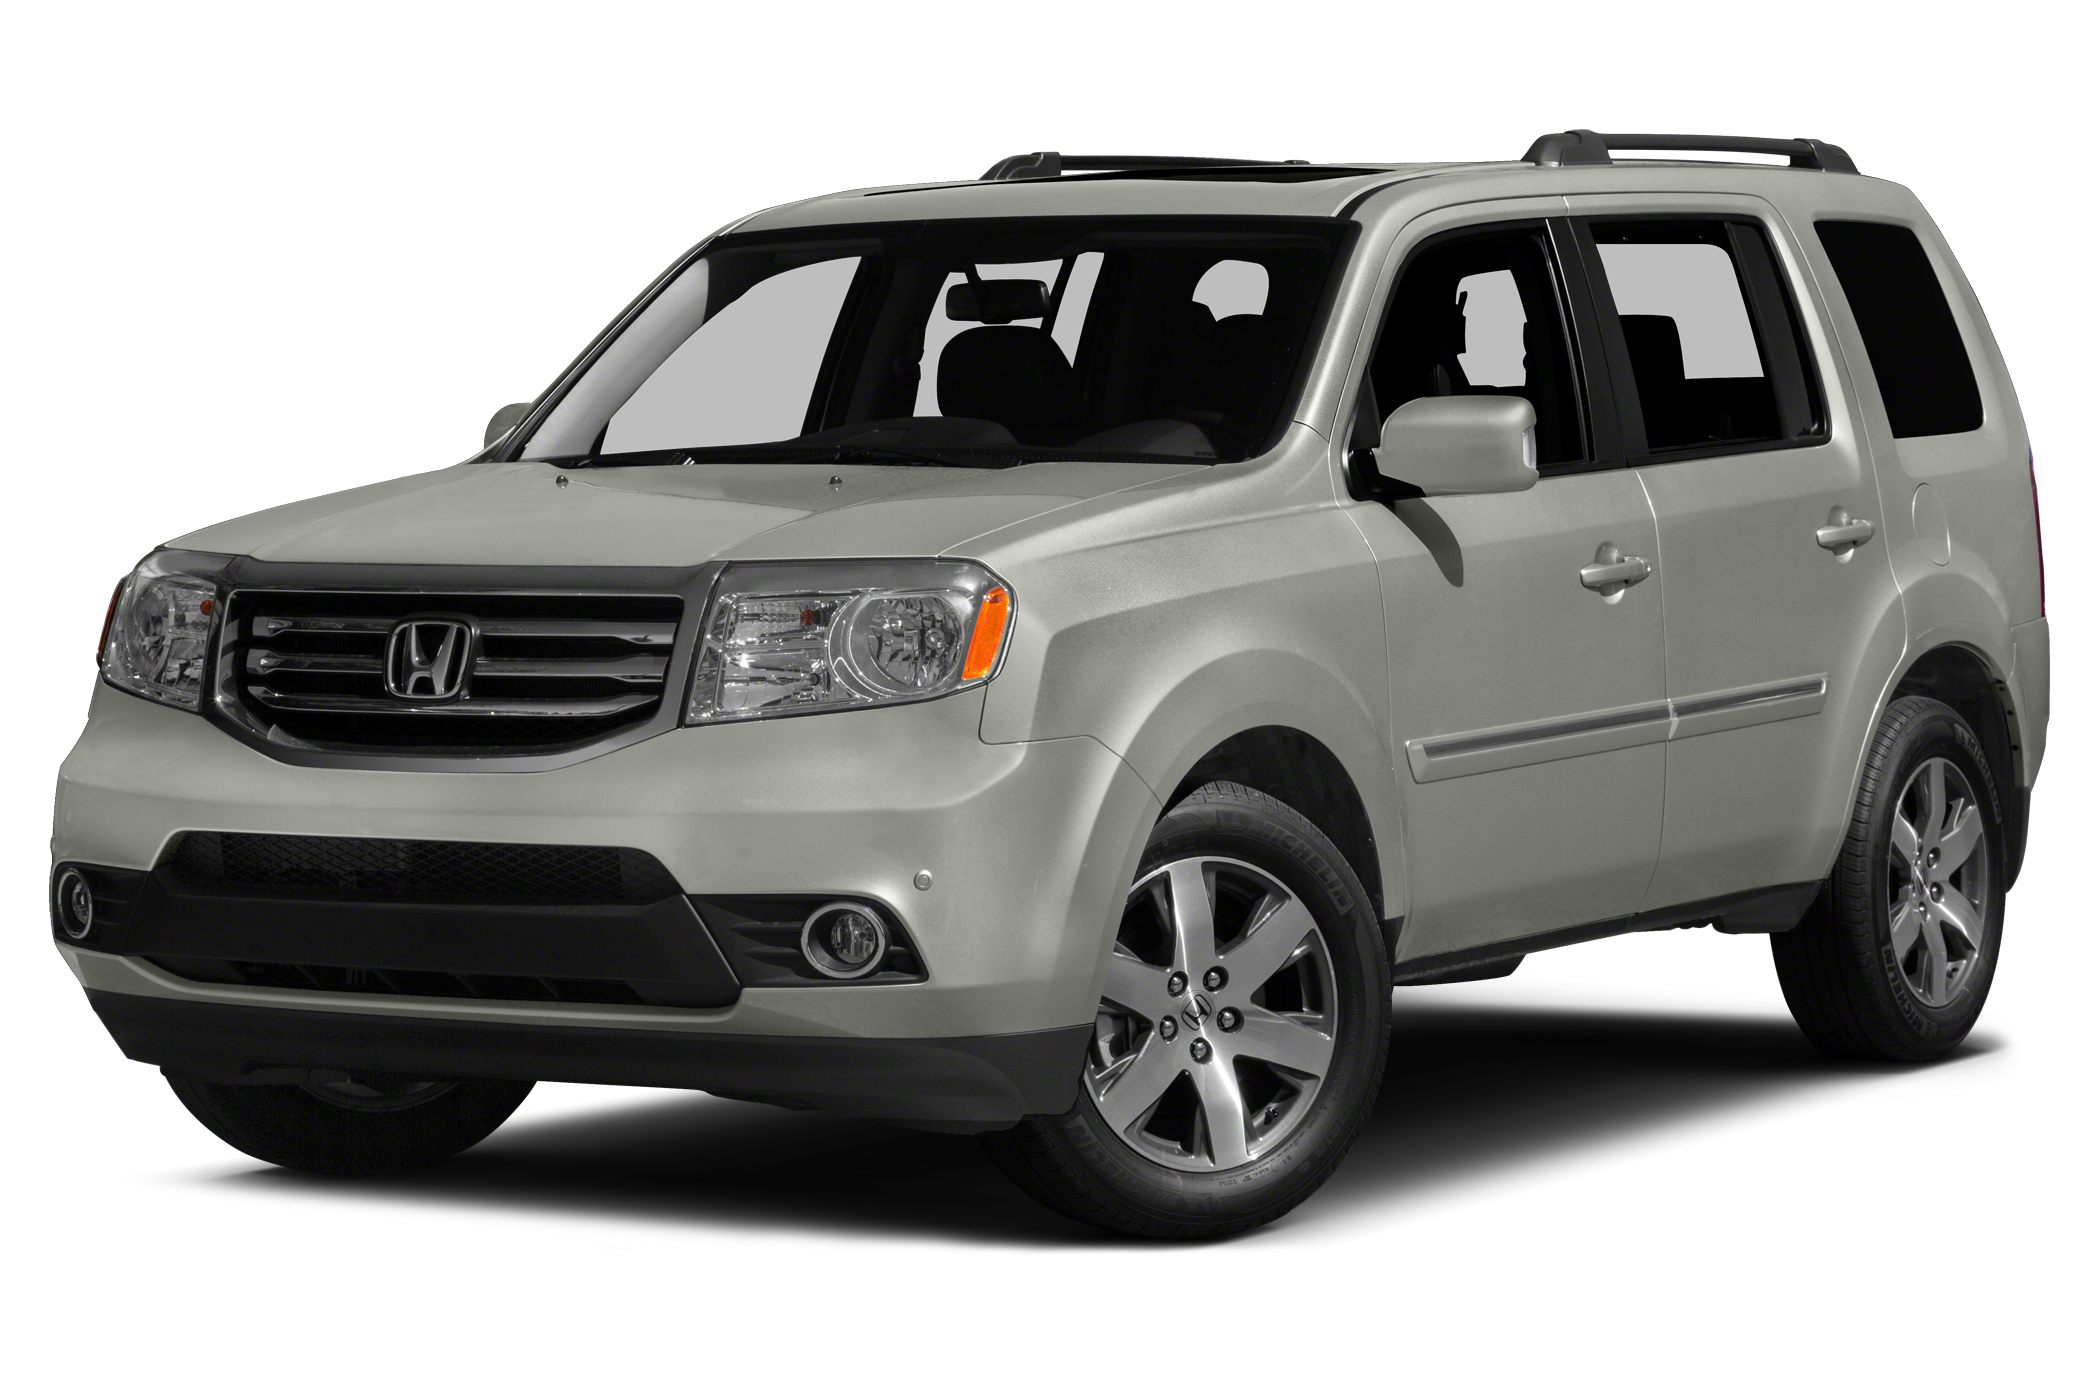 2015 Honda Pilot Touring SUV for sale in Watertown for $42,500 with 10 miles